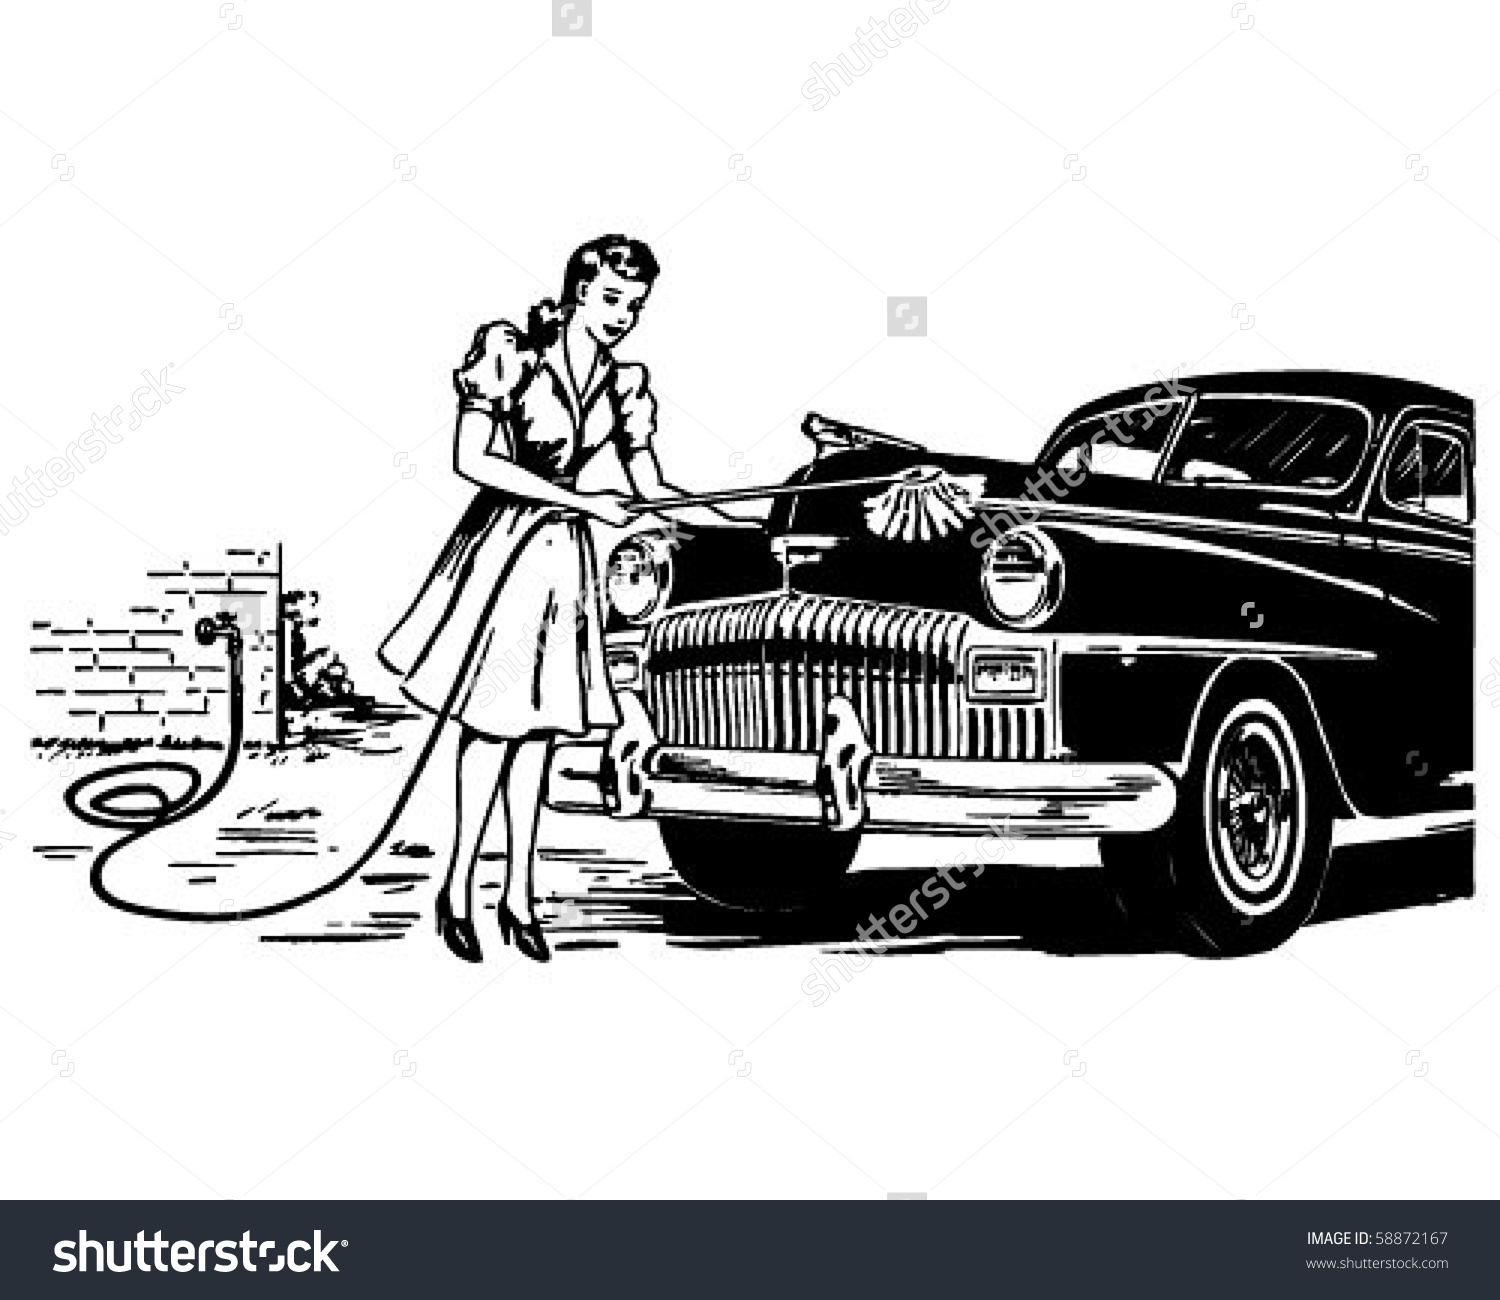 Car wash car clipart graphic library Hand Car Wash Retro Clip Art Stock Vector 58872167 - Shutterstock graphic library